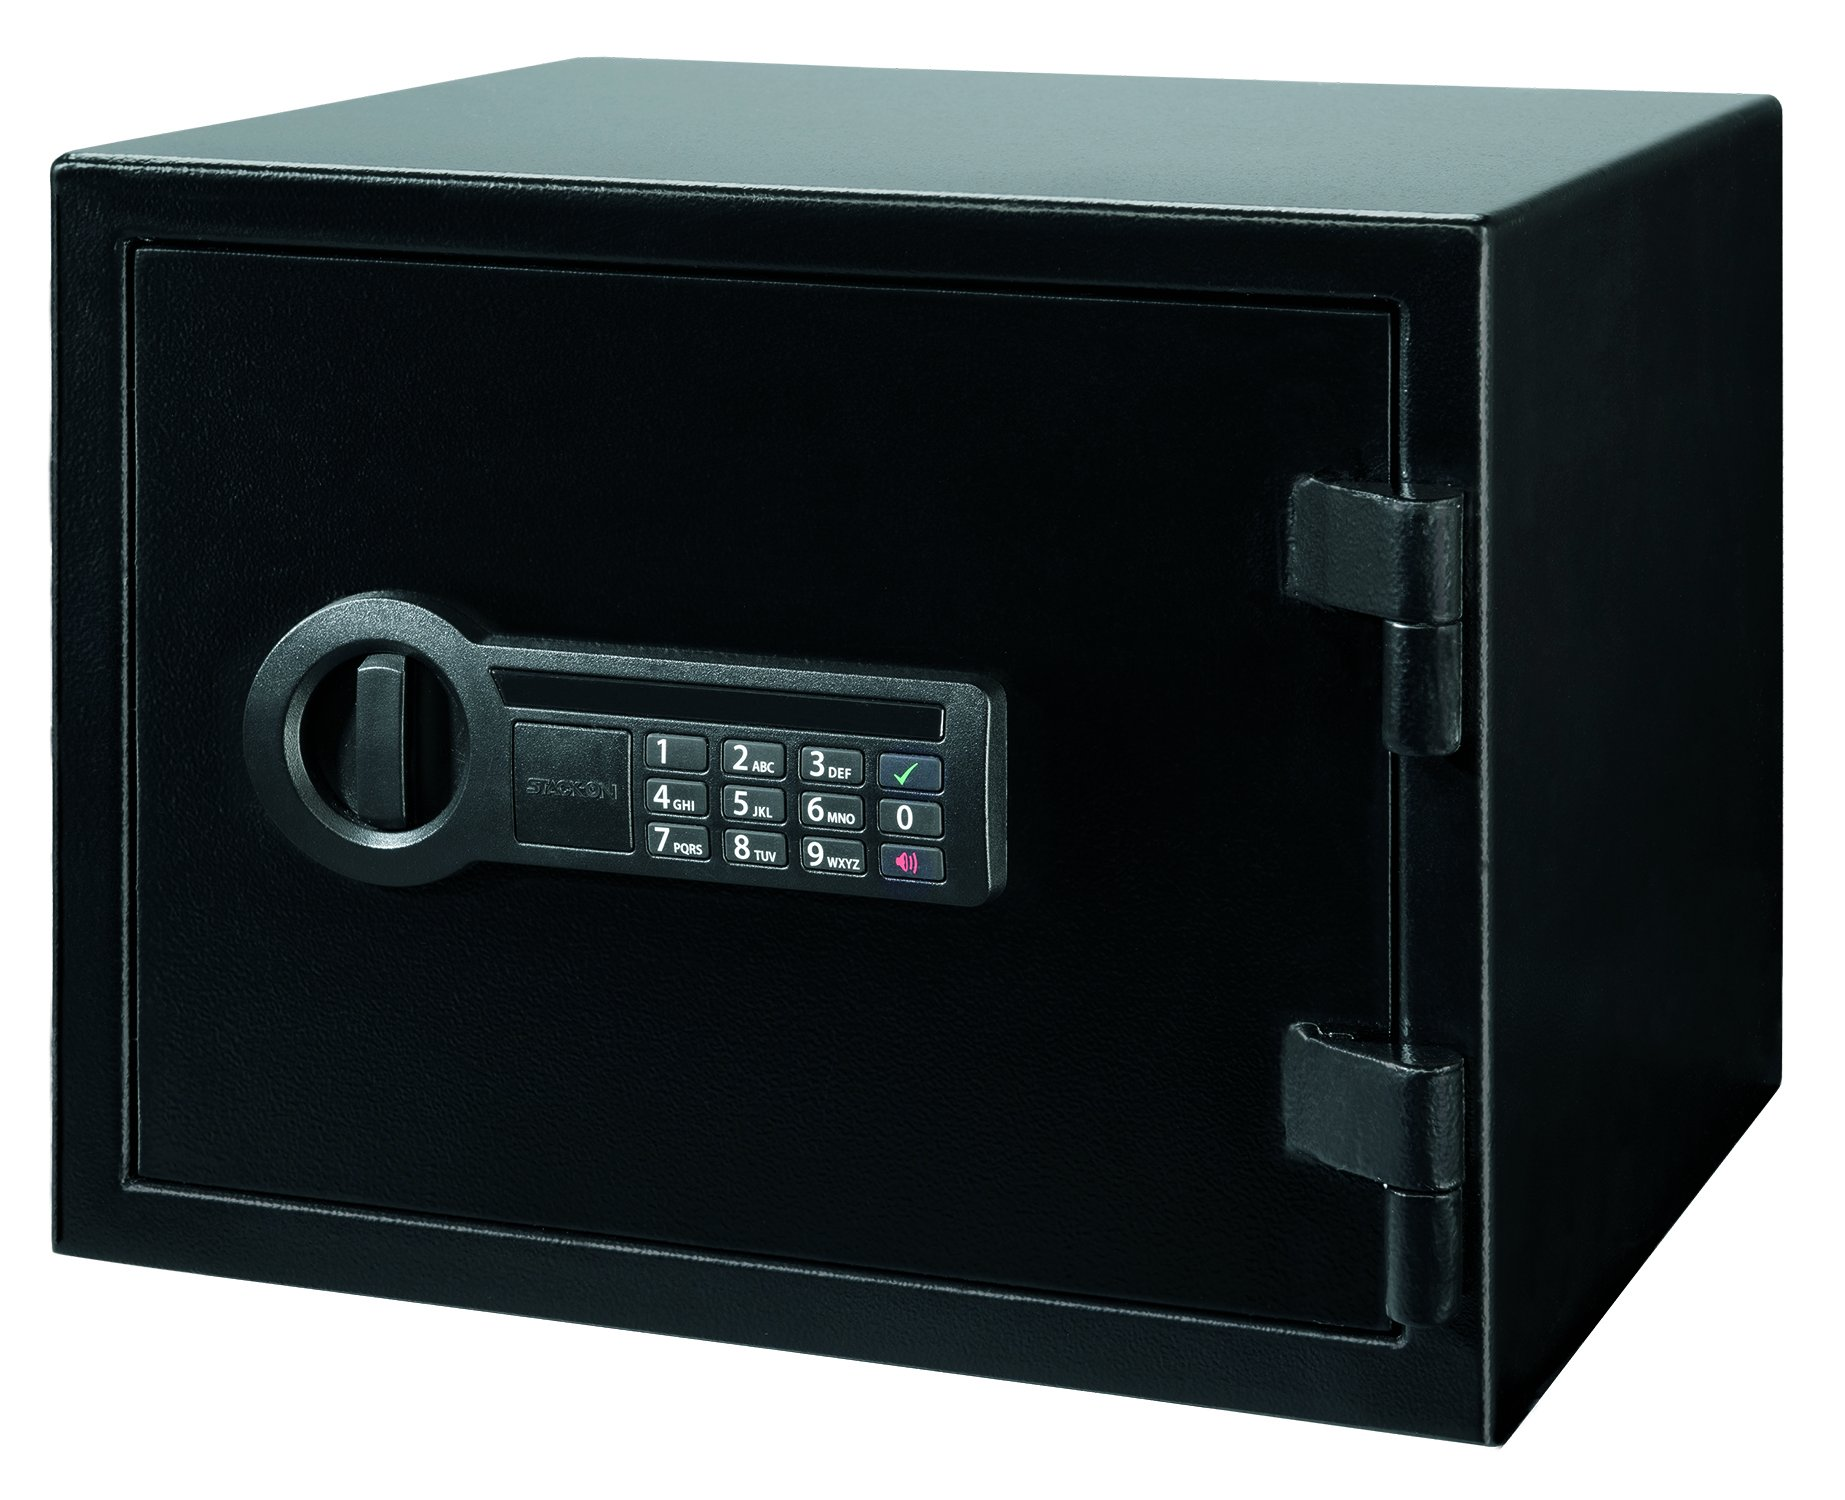 Stack-On PFS-1608 Personal Steel Fireproof Safe with Electronic Lock